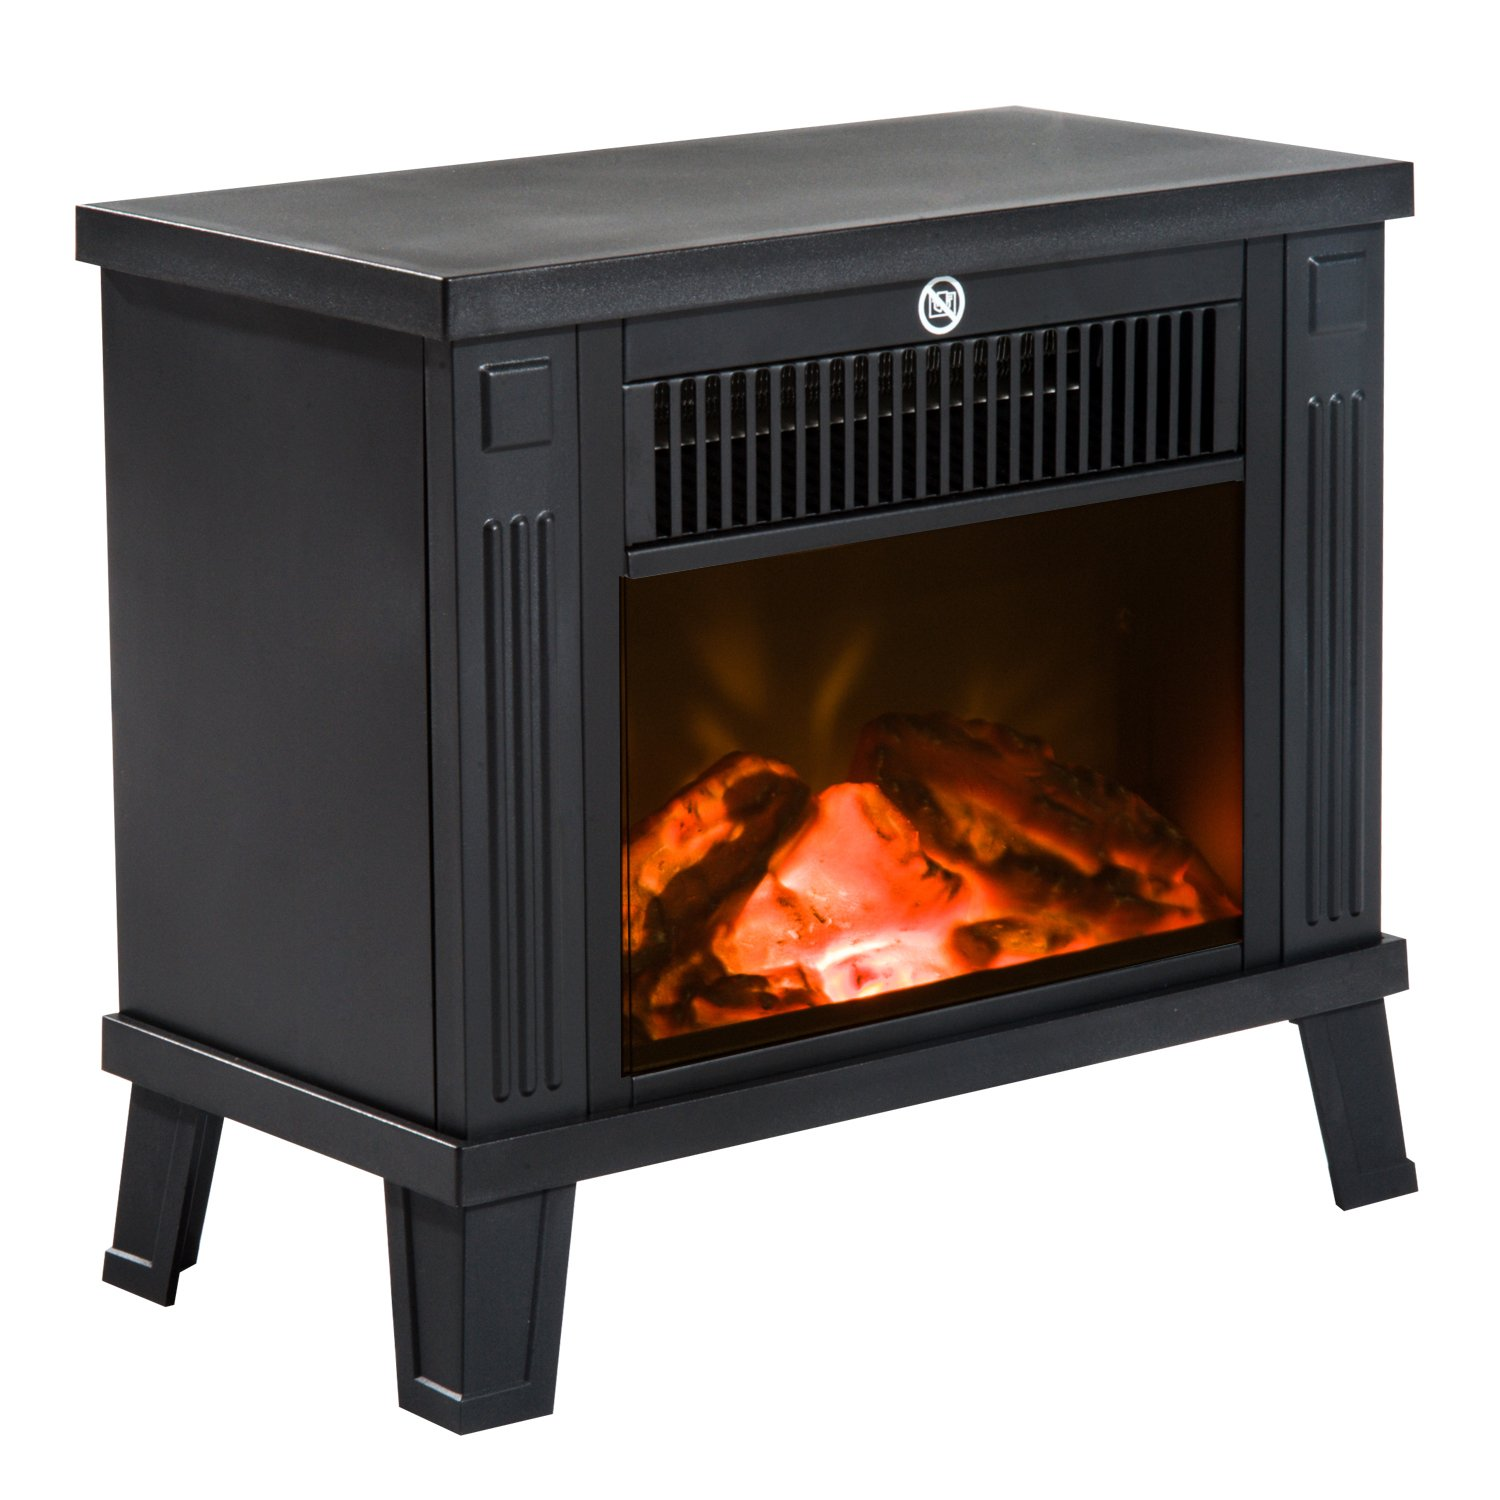 HOMCOM 1.2KW Freestanding Electric Fireplace Fire Wood Log Burning Effect Flame Heater Stove Sold by MHSTAR